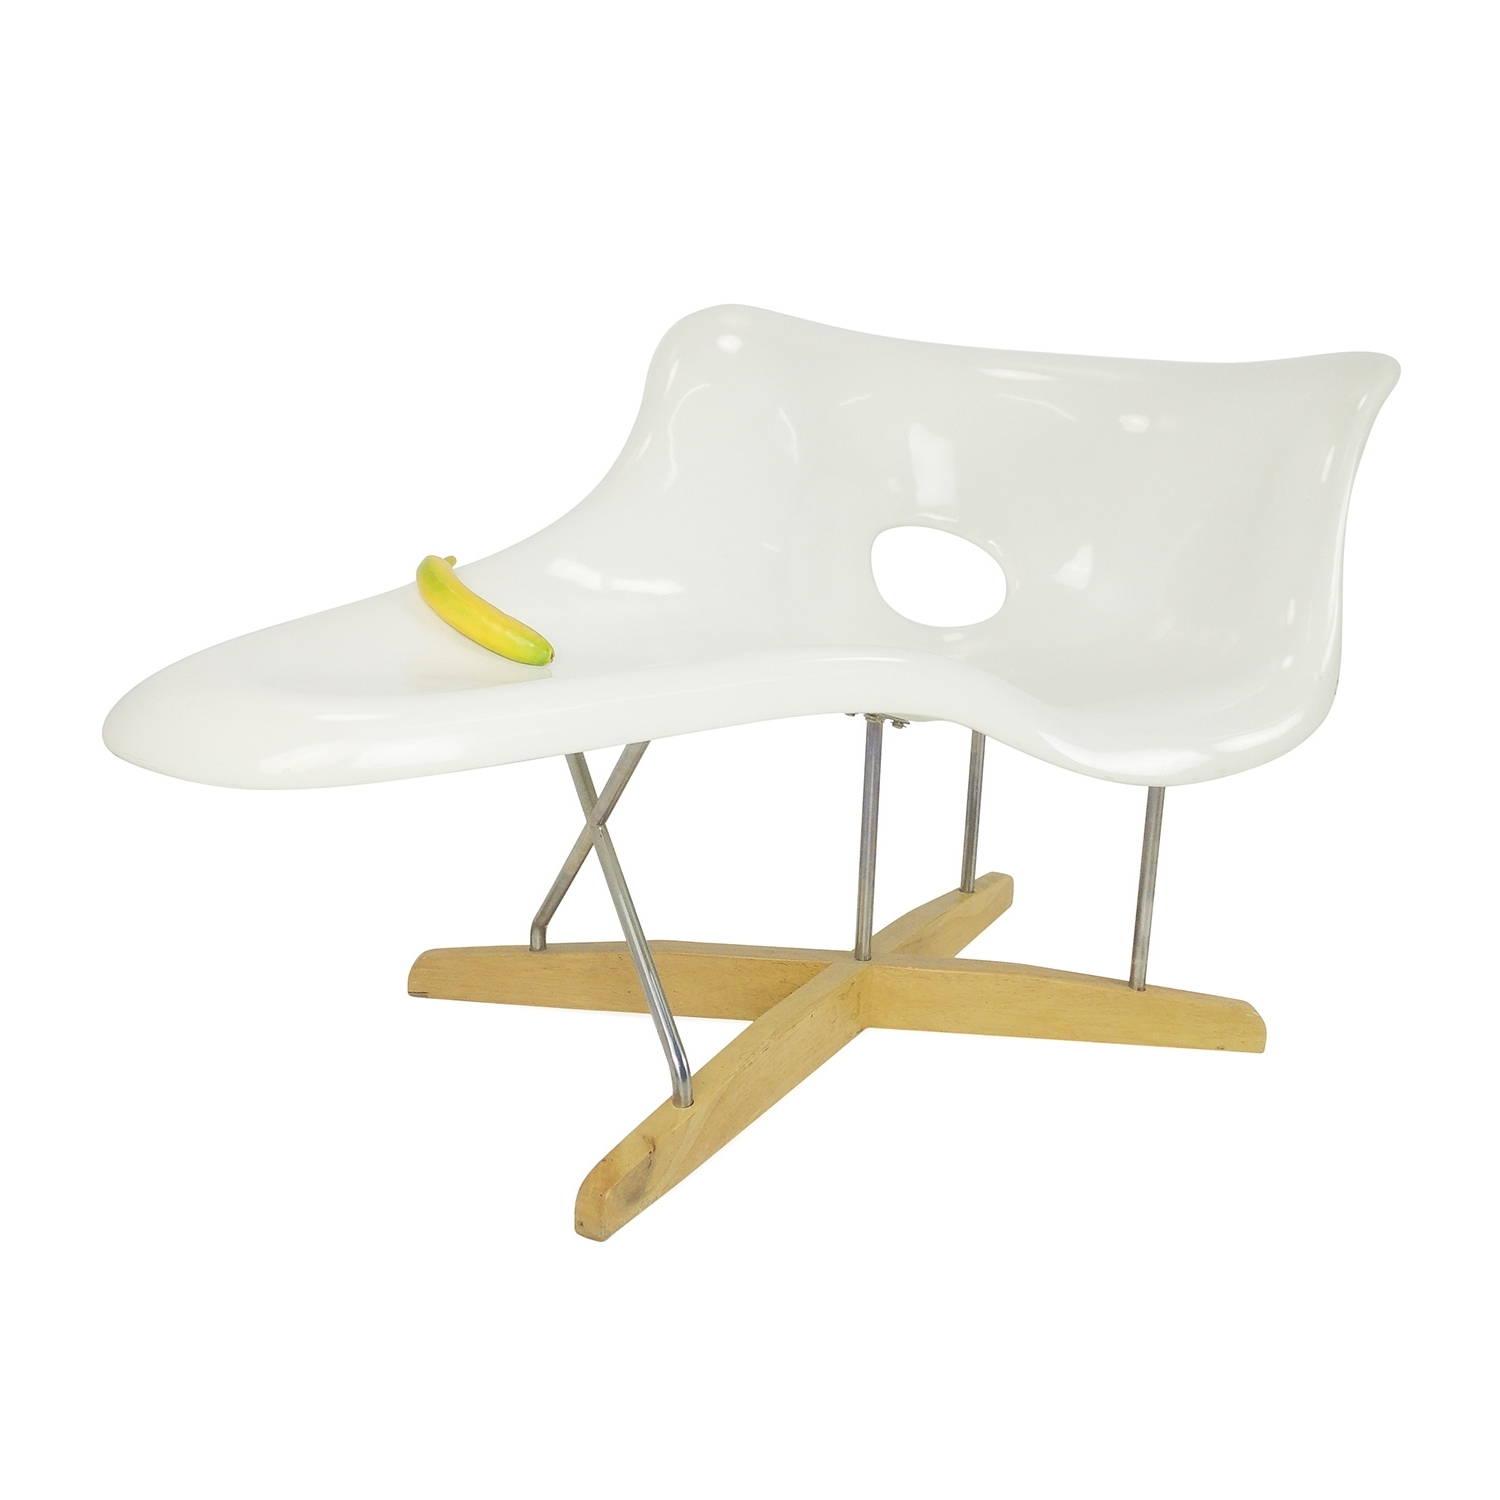 [%63% Off – Eames Replica Of La Chaise La Chaise Replica Lounge Pertaining To Well Liked Eames Chaises Eames Chaises With Famous 63% Off – Eames Replica Of La Chaise La Chaise Replica Lounge Favorite Eames Chaises Pertaining To 63% Off – Eames Replica Of La Chaise La Chaise Replica Lounge Preferred 63% Off – Eames Replica Of La Chaise La Chaise Replica Lounge For Eames Chaises%] (View 8 of 15)